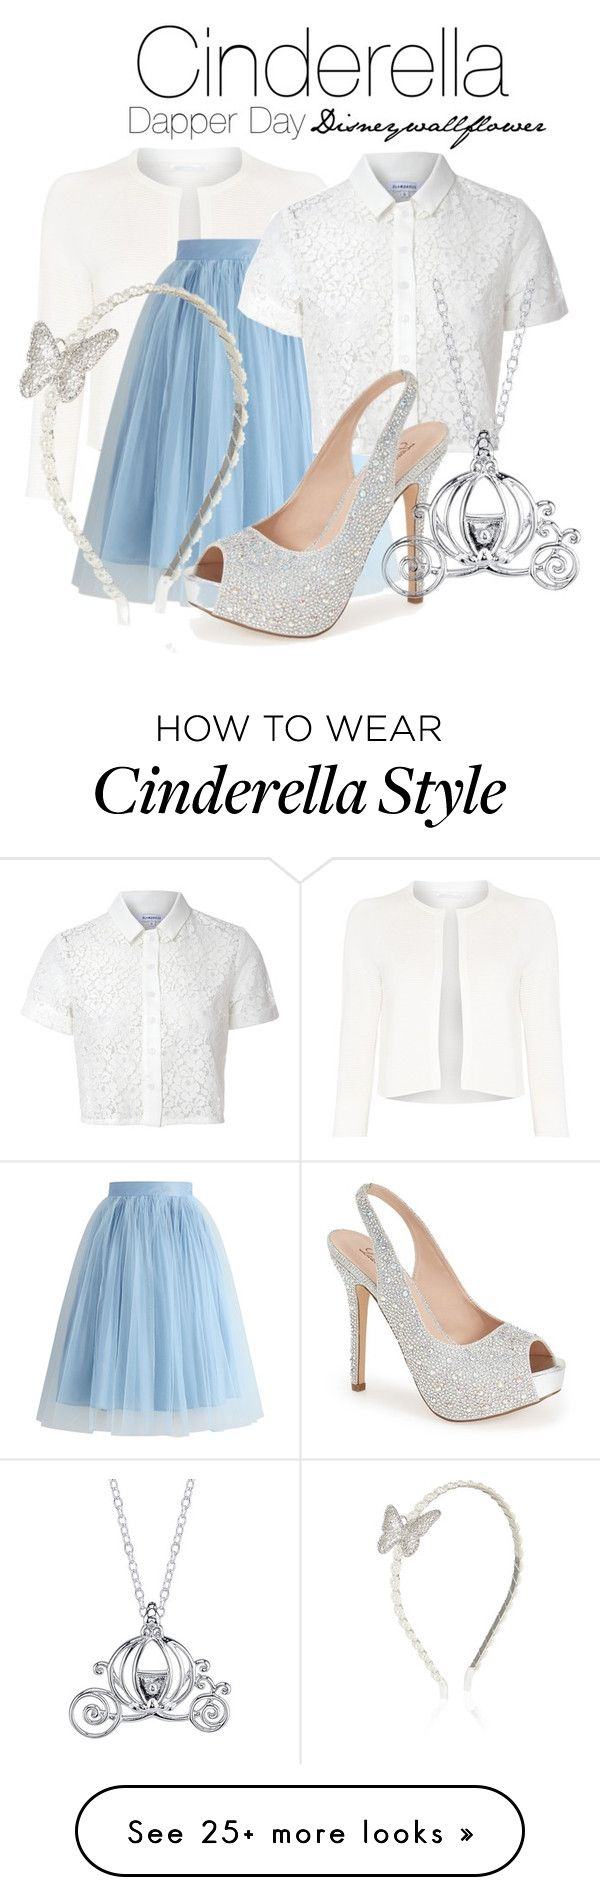 """Cinderella- Dapper Day"" by disneywallflower on Polyvore featuring HUGO, Chicwish, Glamorous, Lauren Lorraine, Disney and Monsoon"